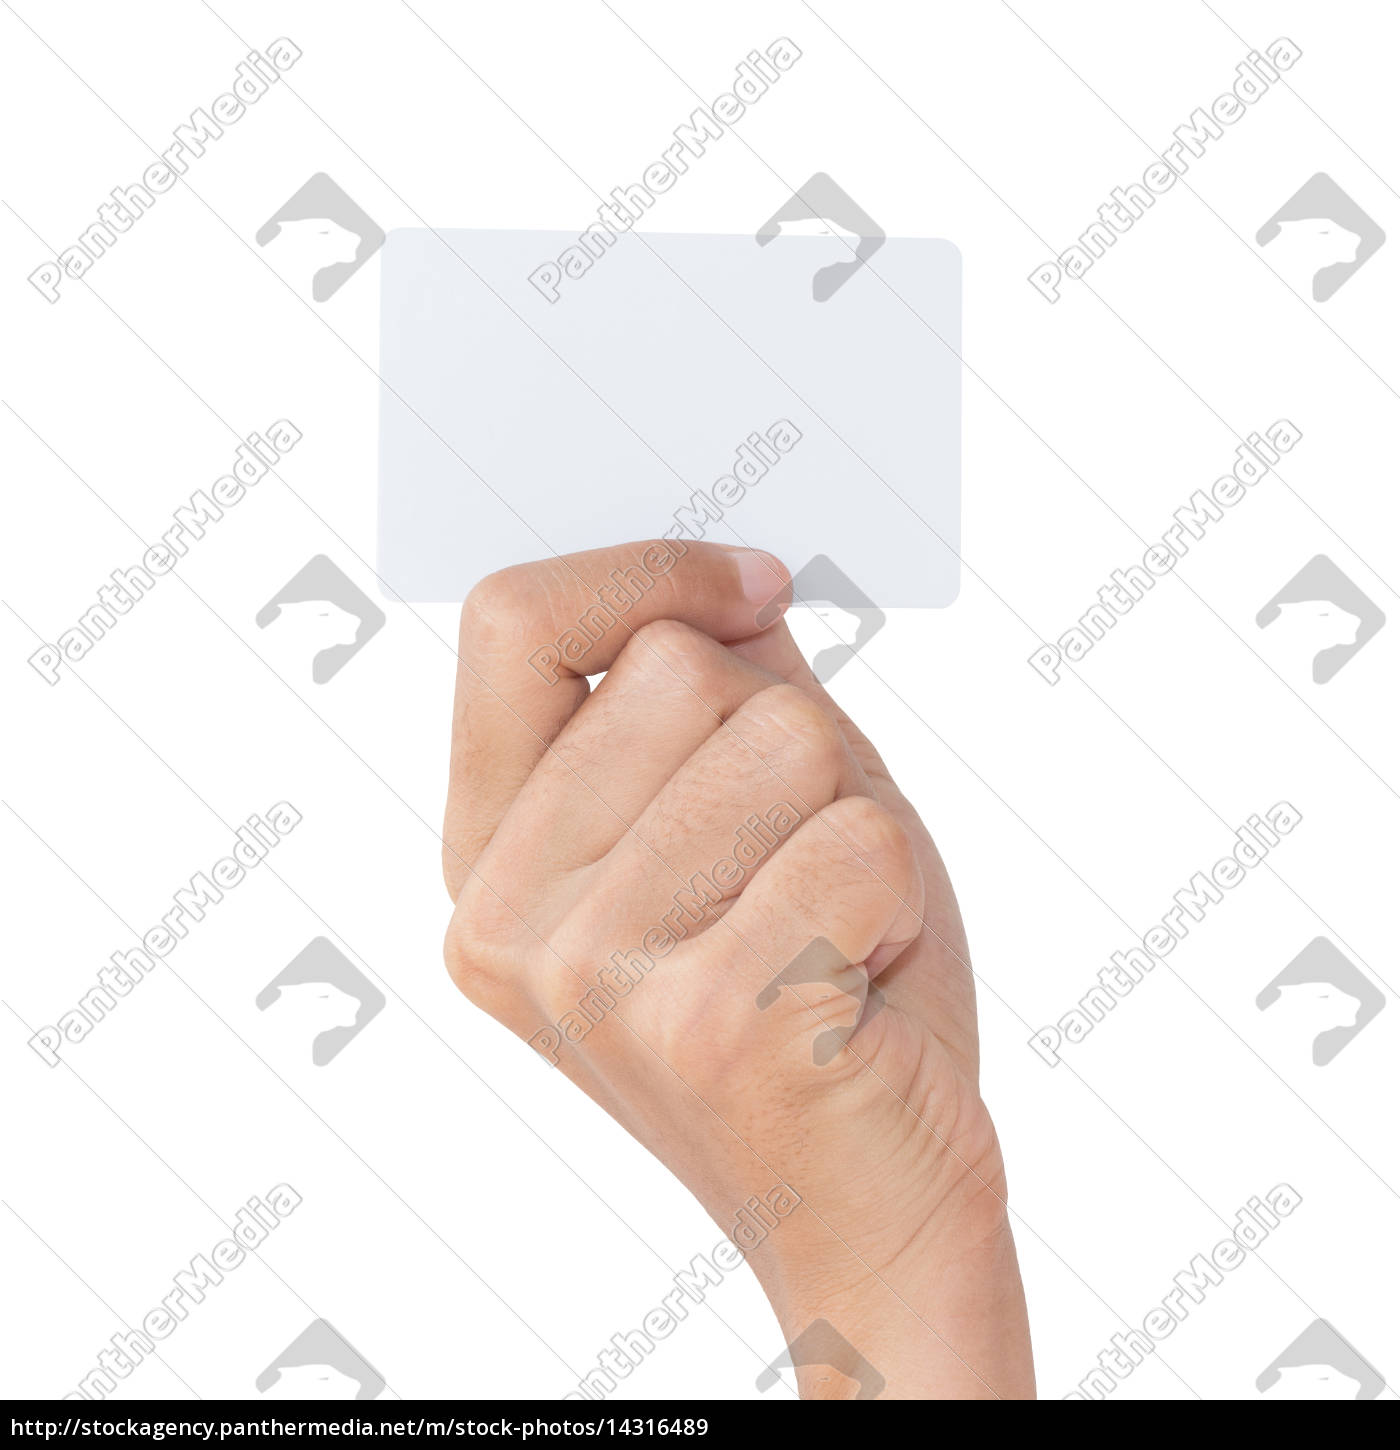 hand, hold, blank, white, card, isolated - 14316489